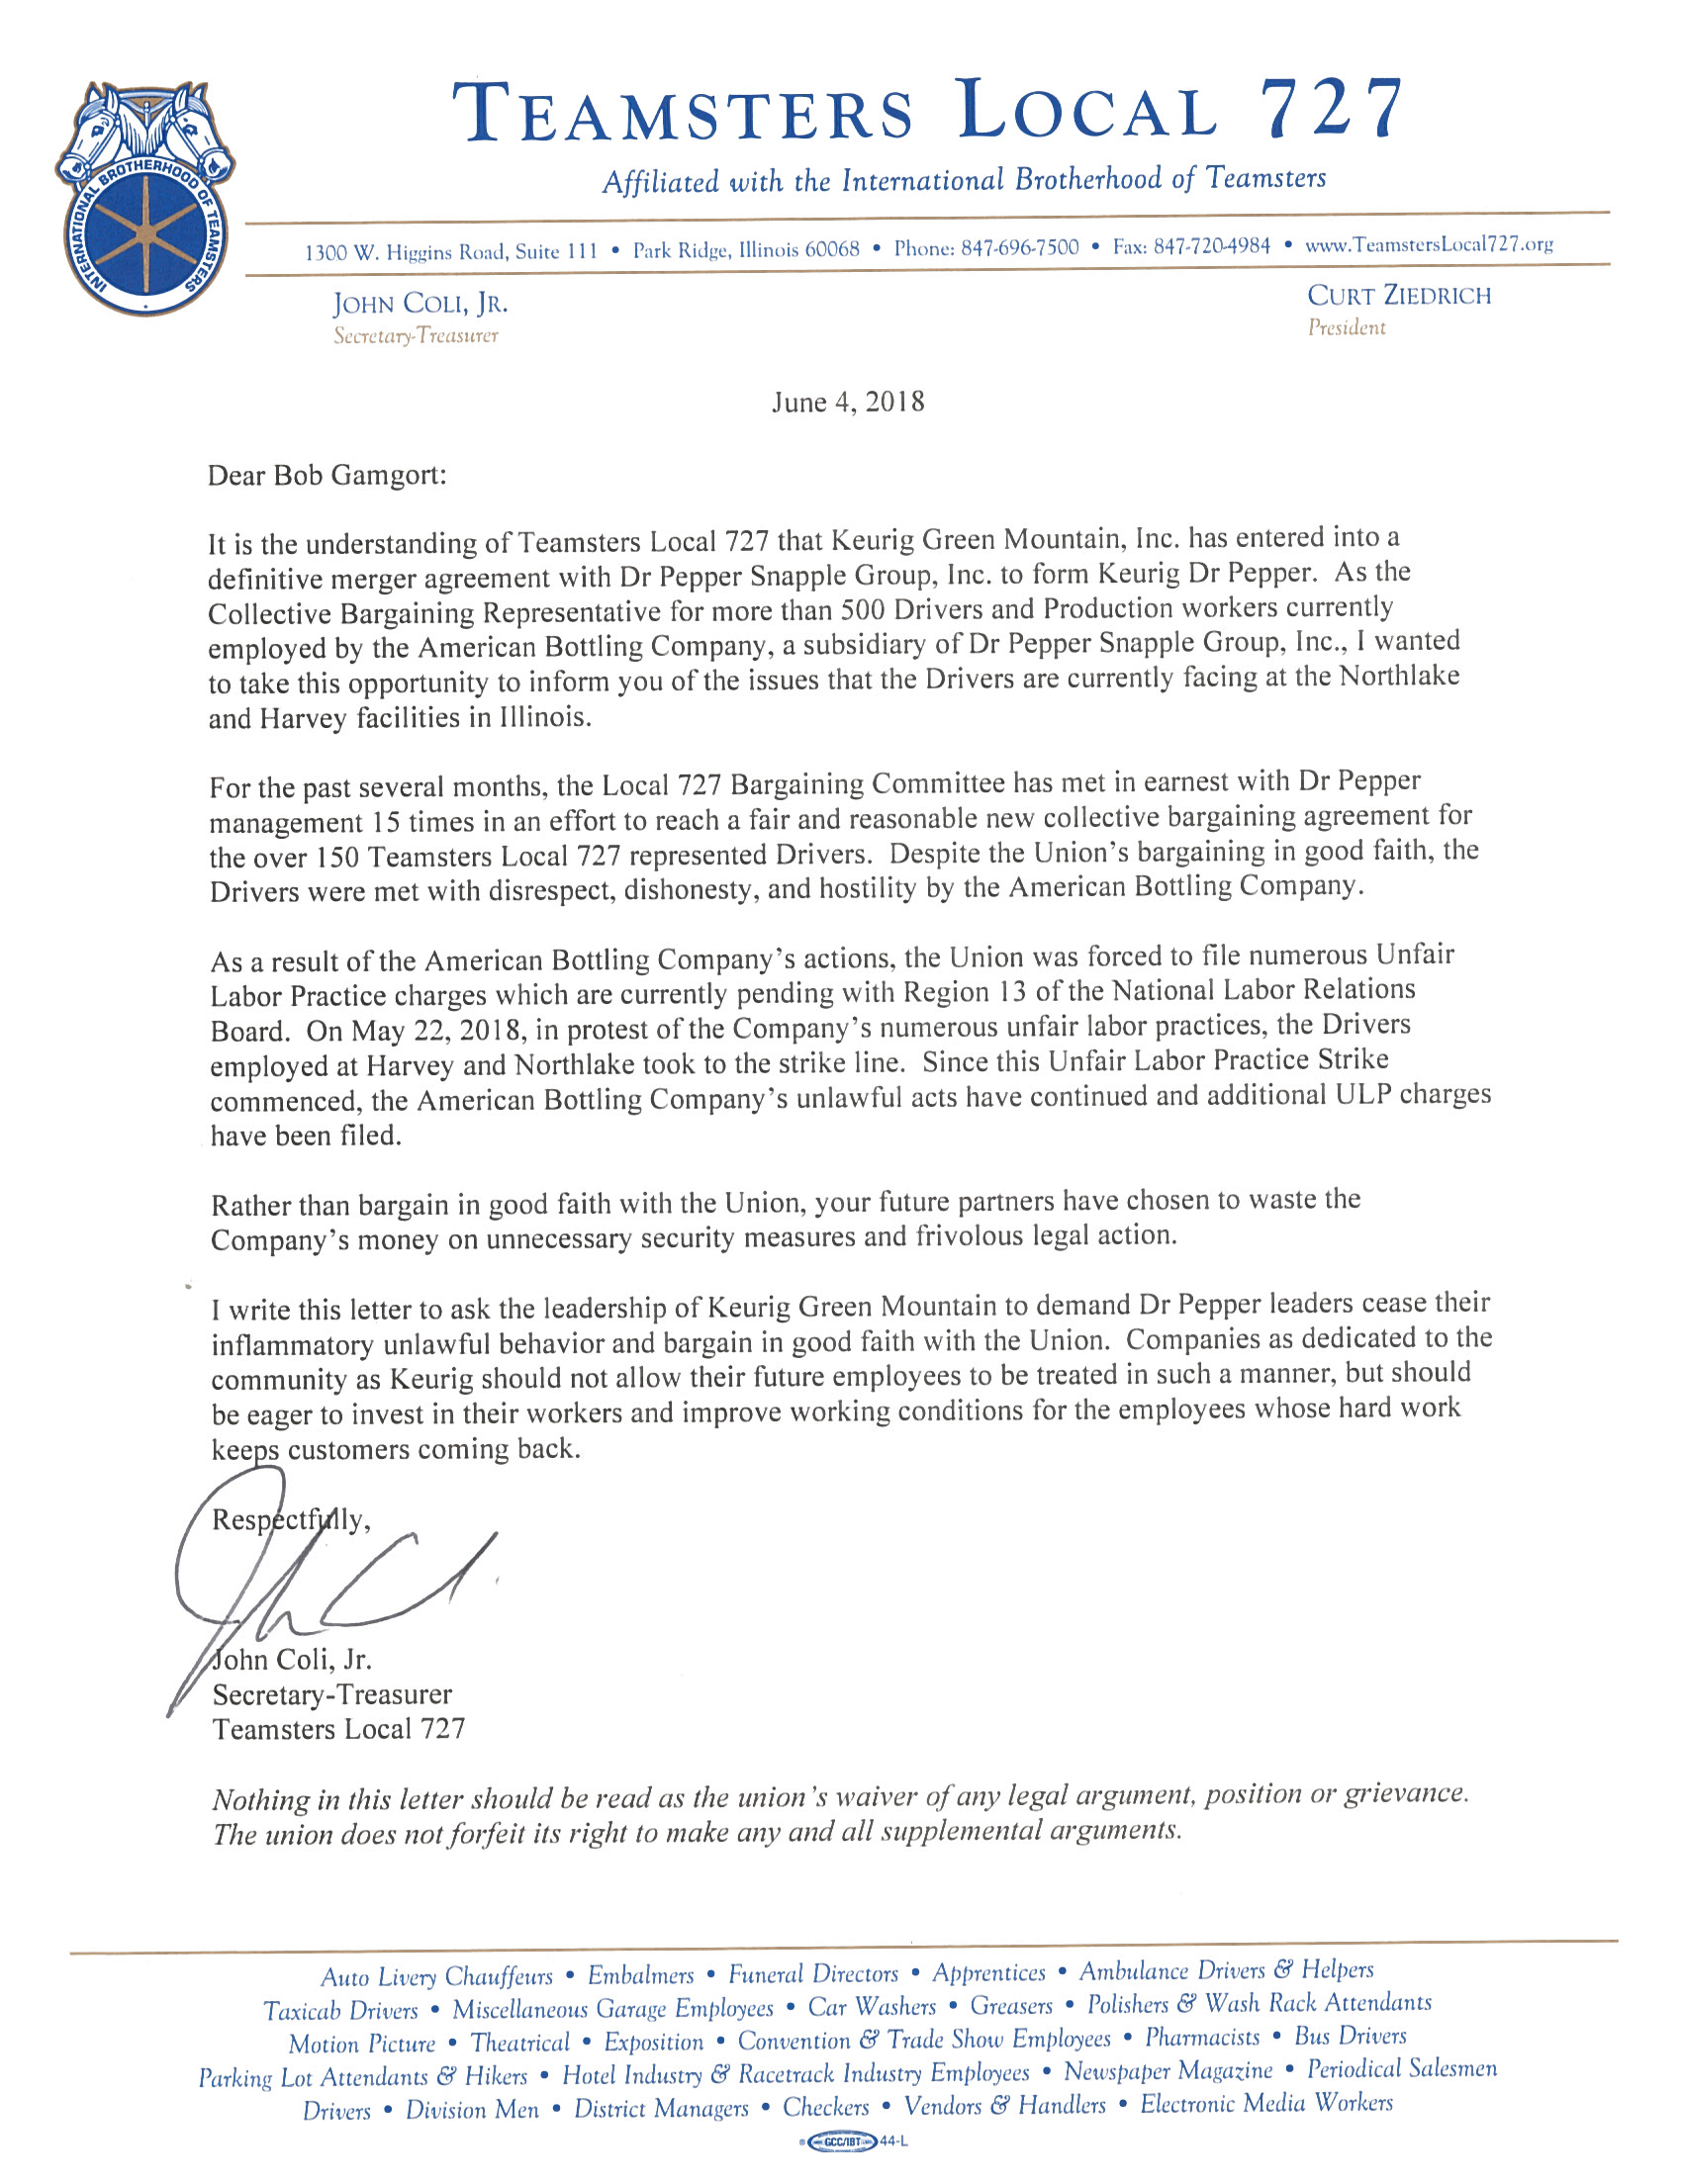 Letter to Bob Gamgort- CEO Keurig Green Mountain